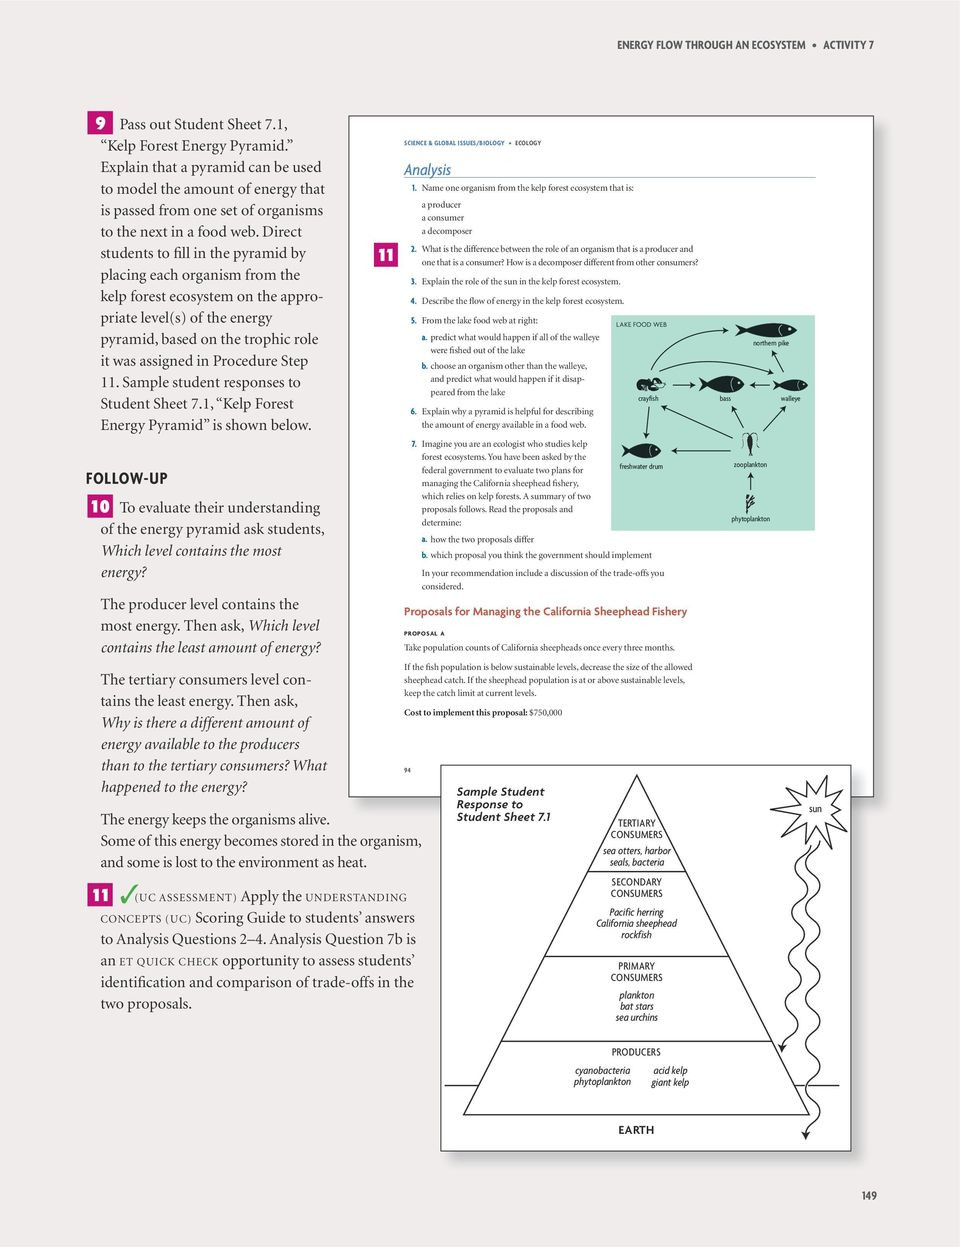 Energy Flow In Ecosystems Worksheet 7 Energy Flow Through An Ecosystem Investigation 2 C L A S S